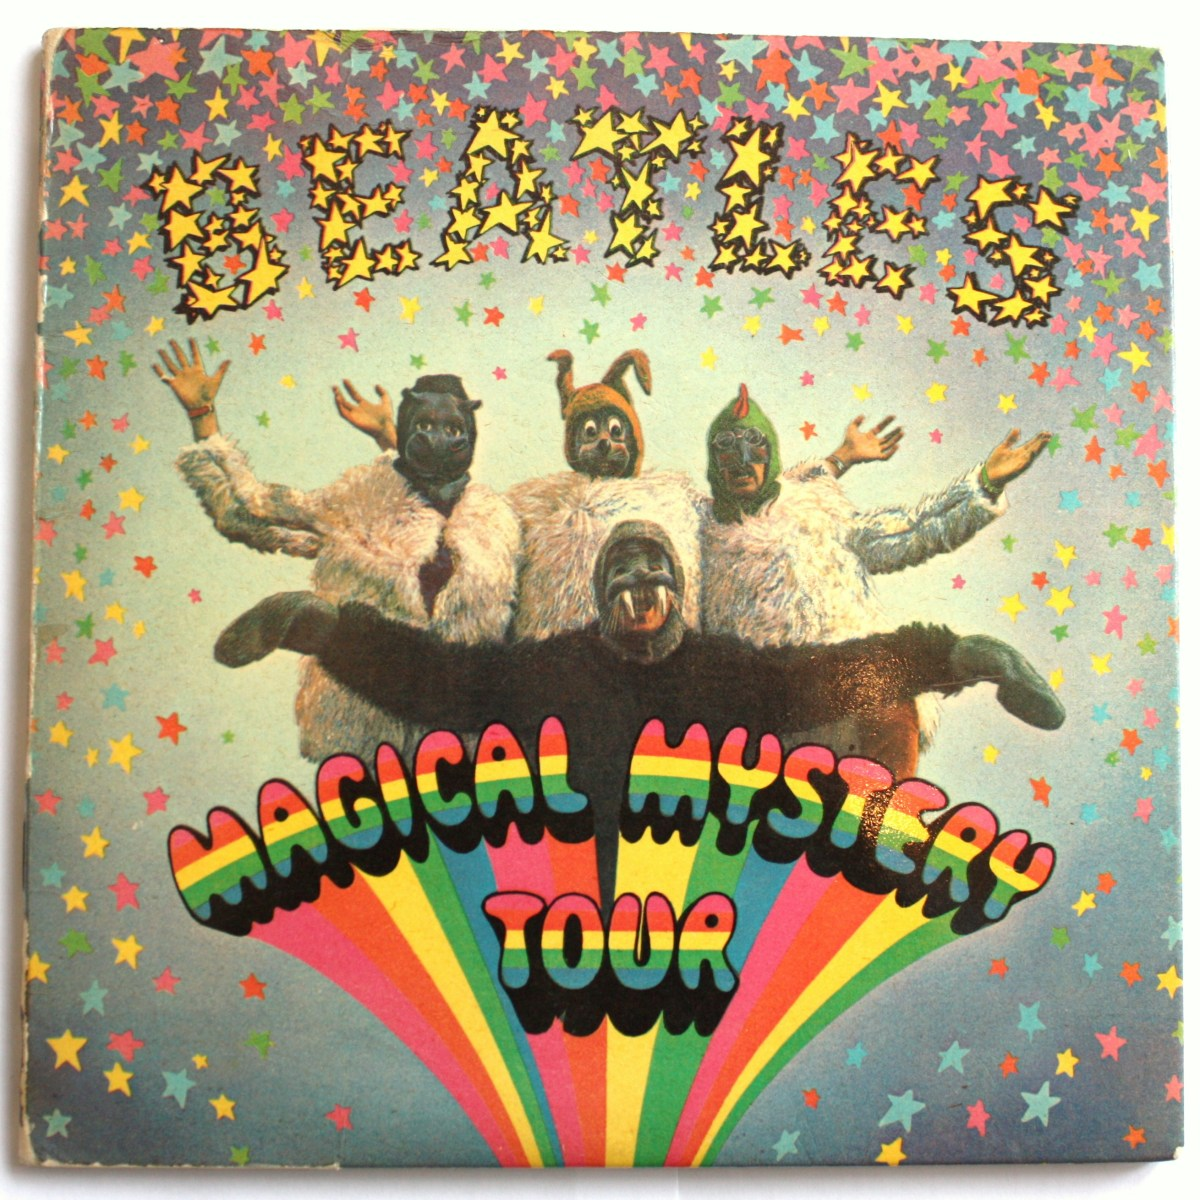 Five Reasons To Watch The Beatles Magical Mystery Tour